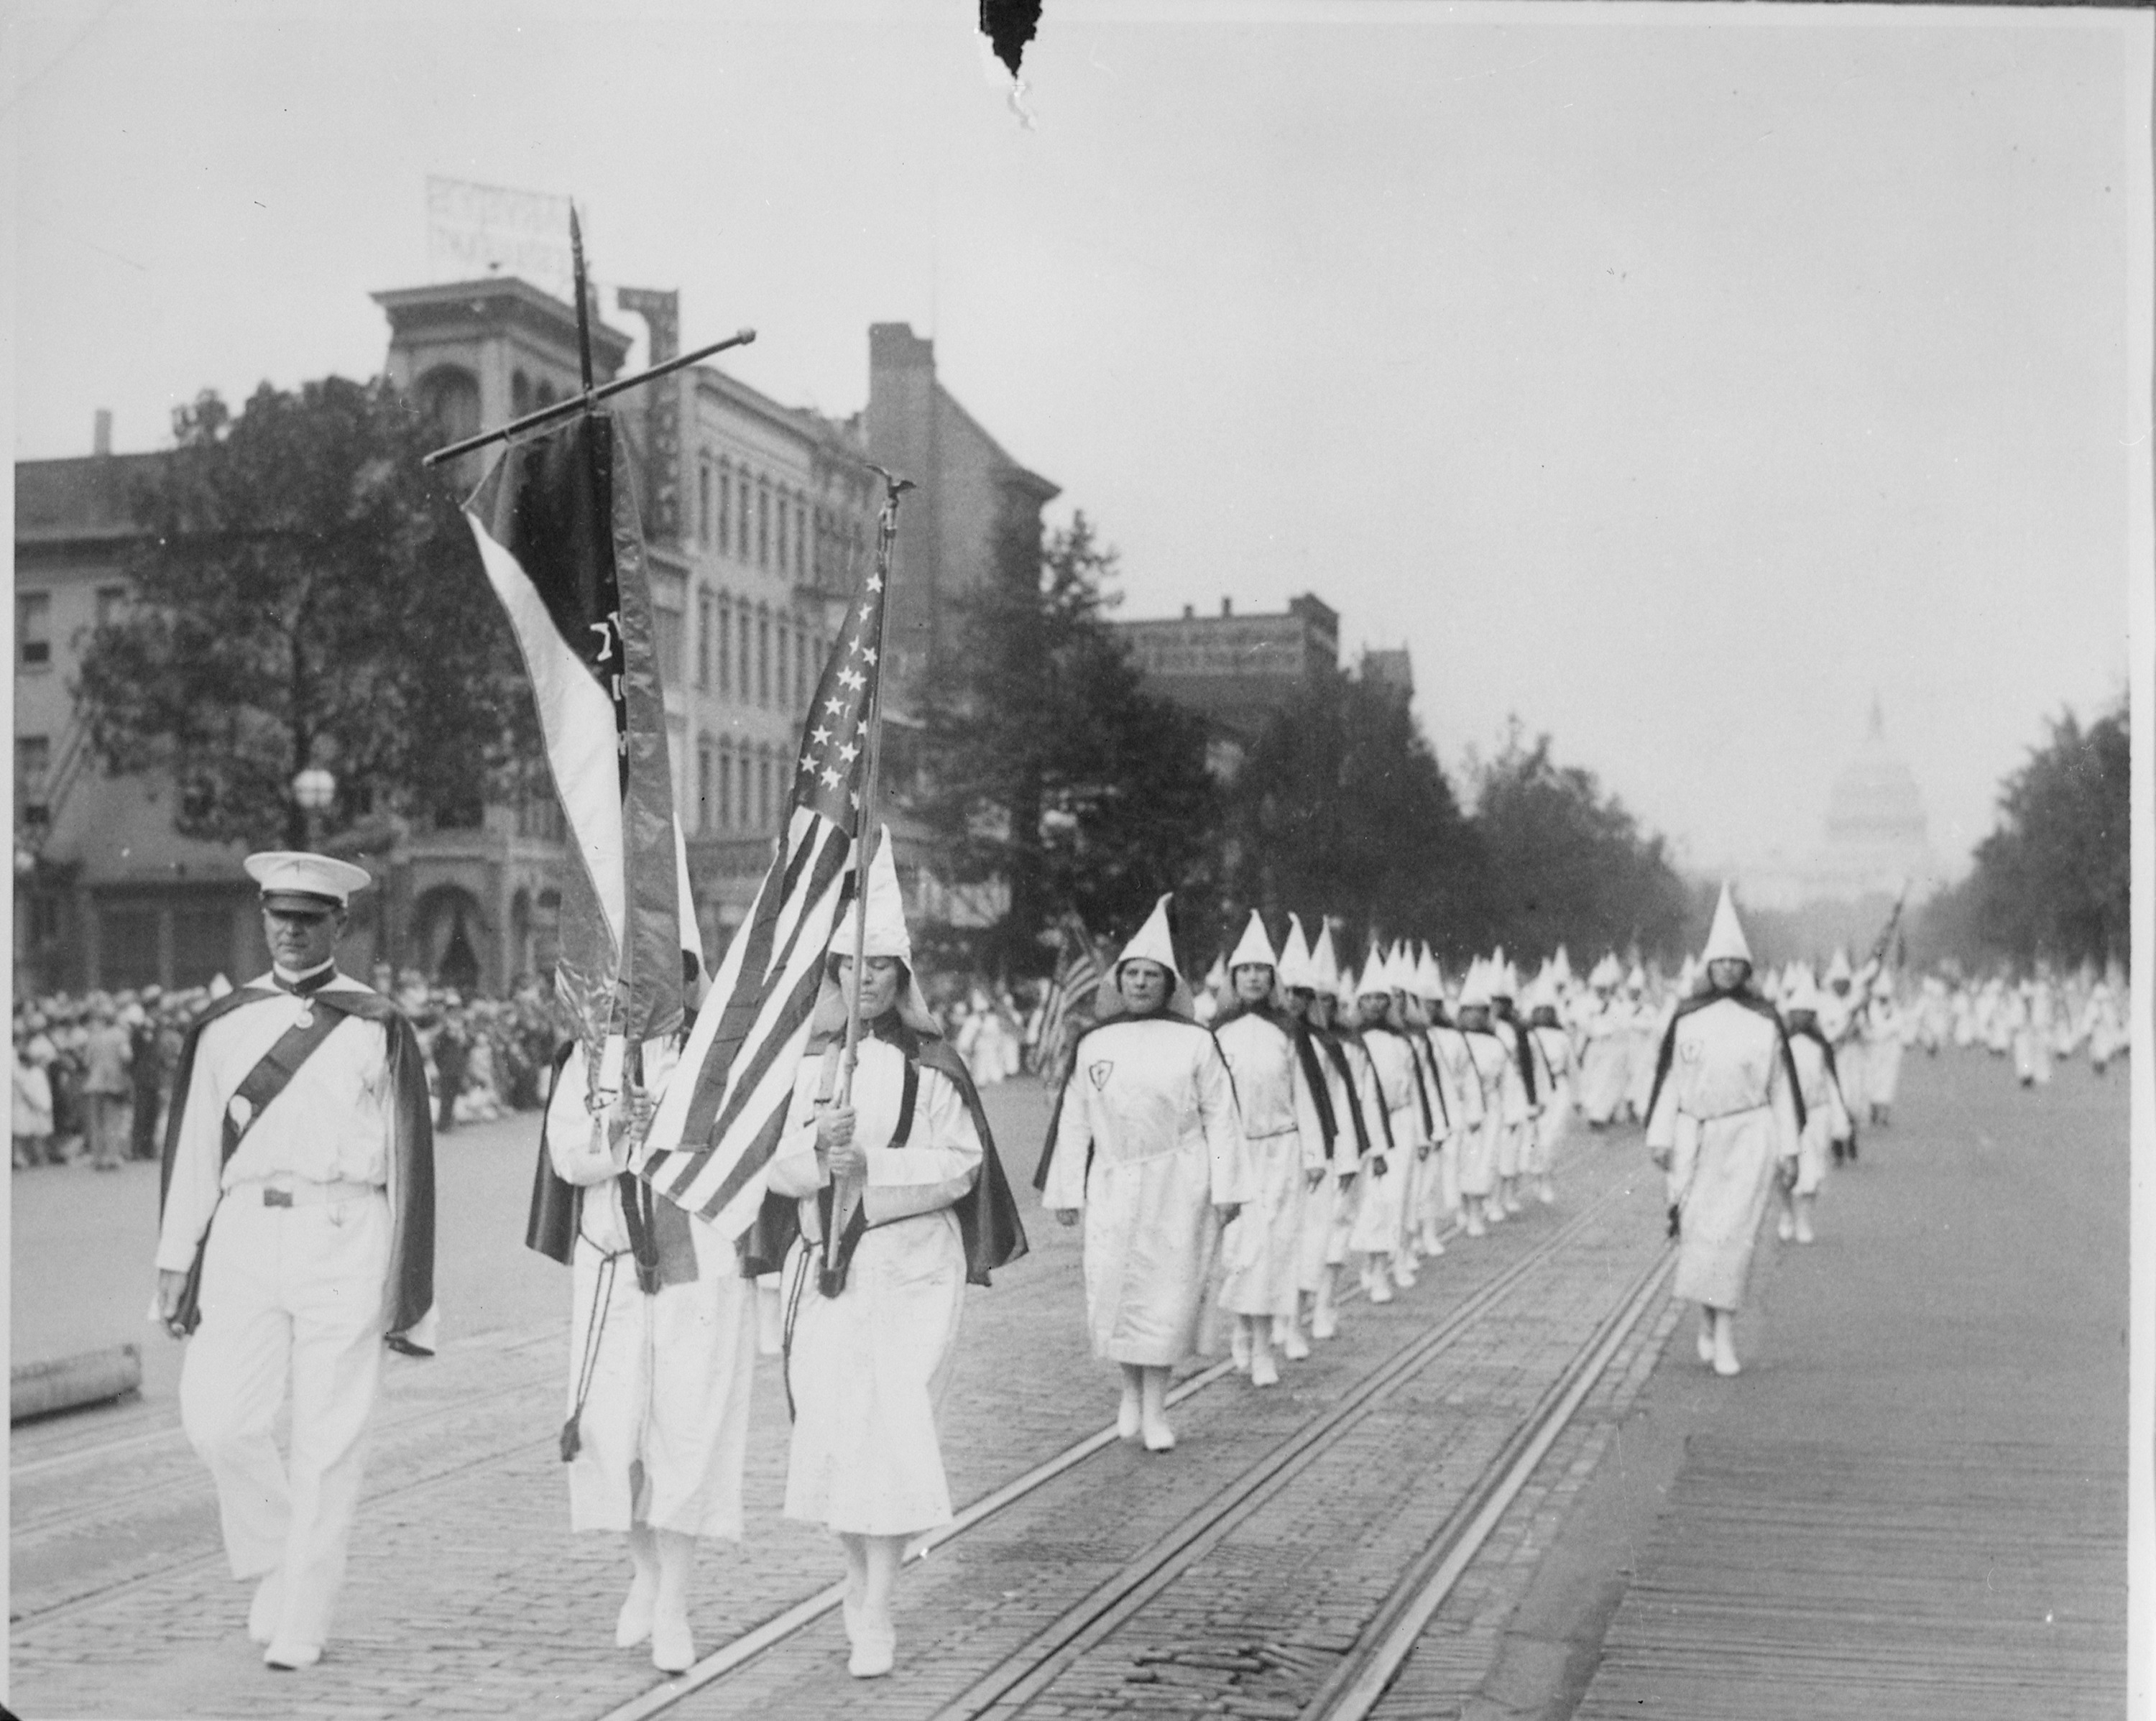 a study of the ku klux klan or kkk Newswise — washington, dc, december 4, 2014 — the ku klux klan's failure to defeat the black civil rights moment is well documented, but the group's lesser-known legacy may be its lasting impact on the us political system, according to a paper published in the december issue of the american sociological review.